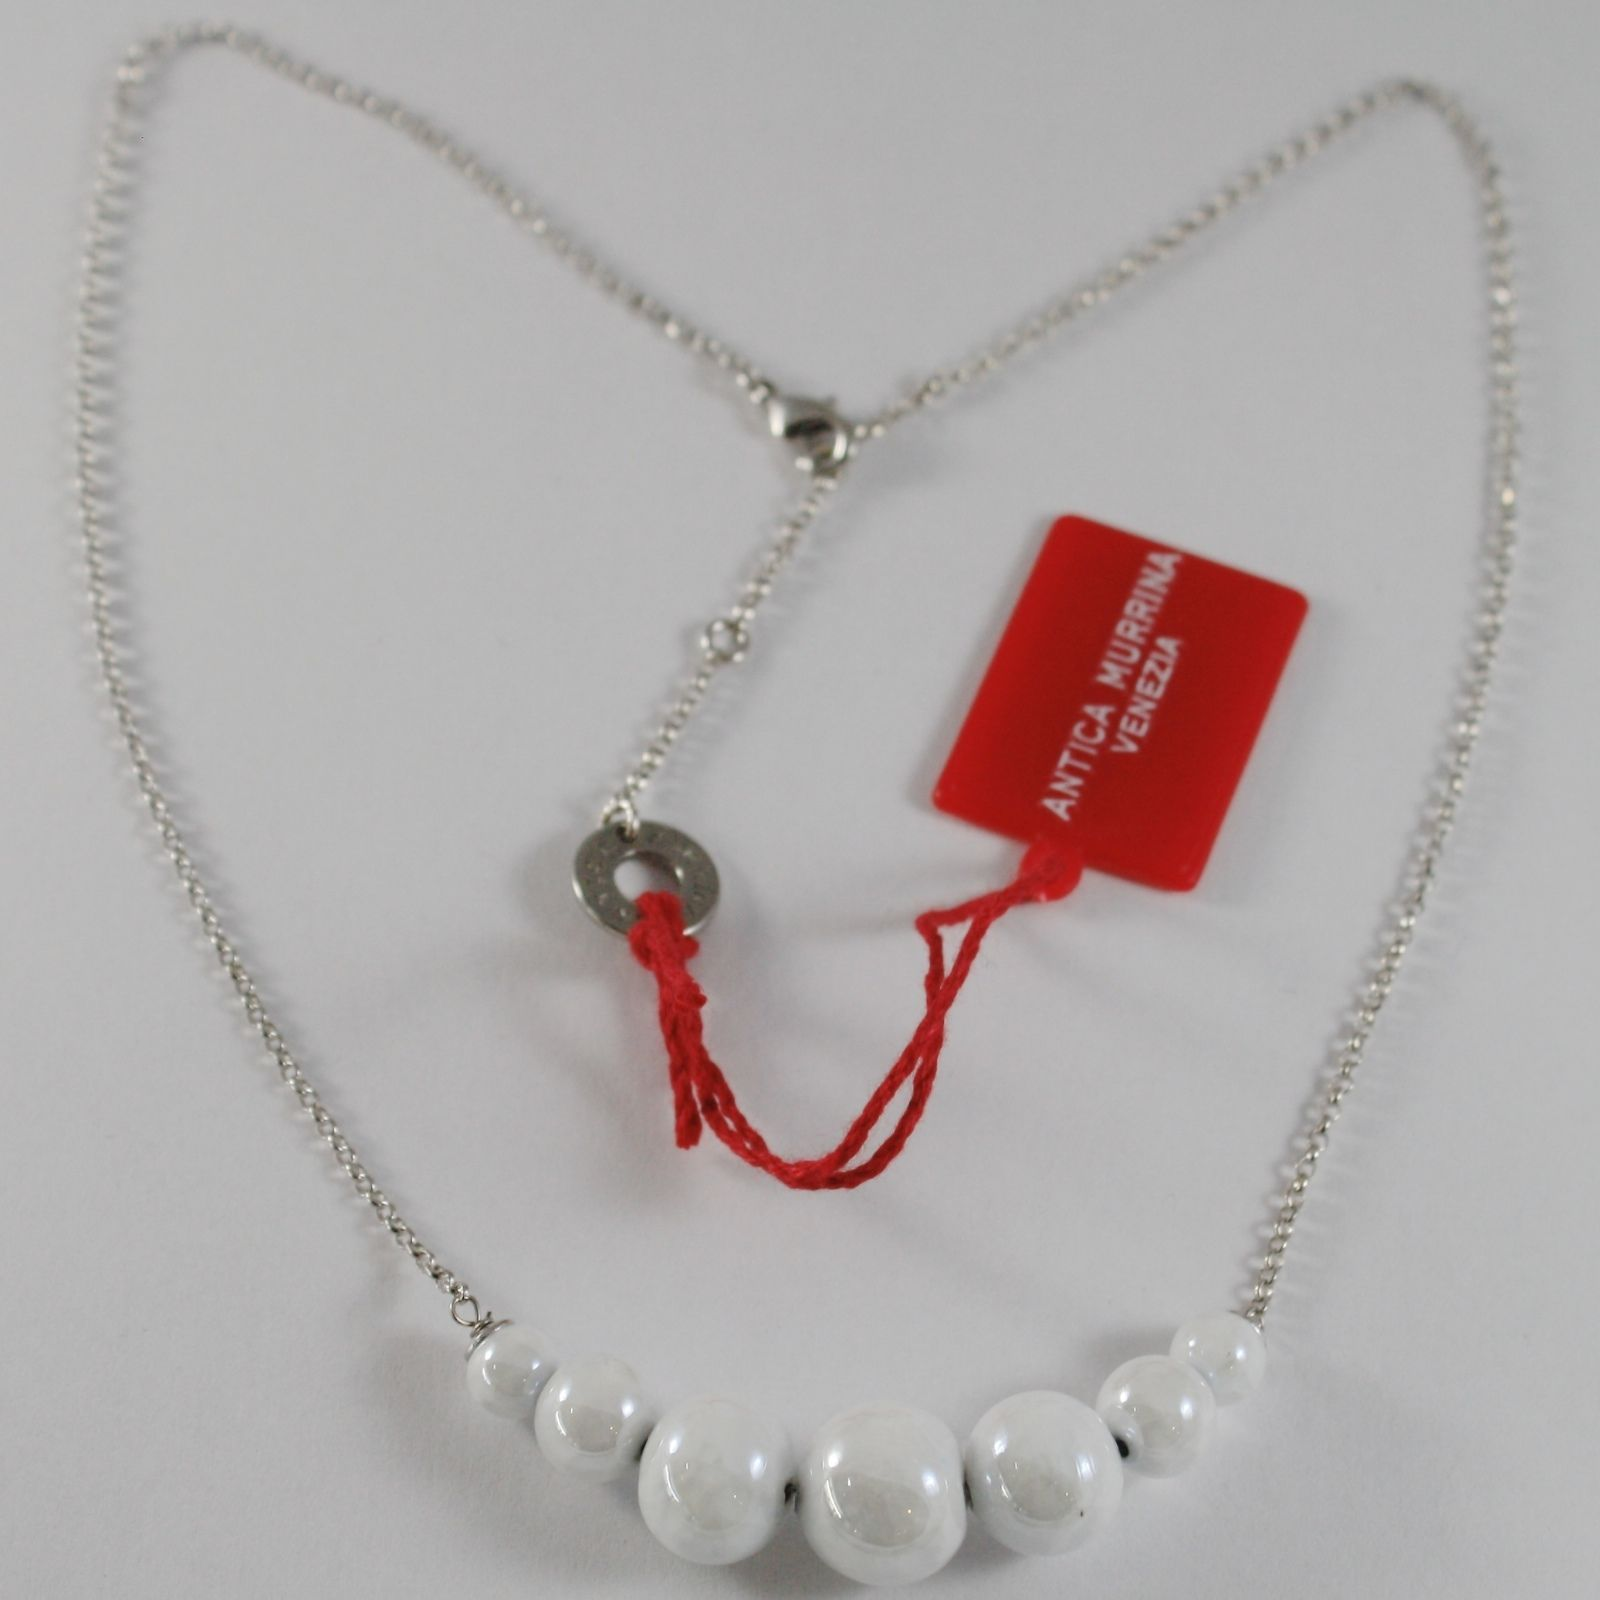 ANTICA MURRINA VENEZIA CENTRAL WHITE SPHERE BALLS NECKLACE 50 CM, 20 INCHES